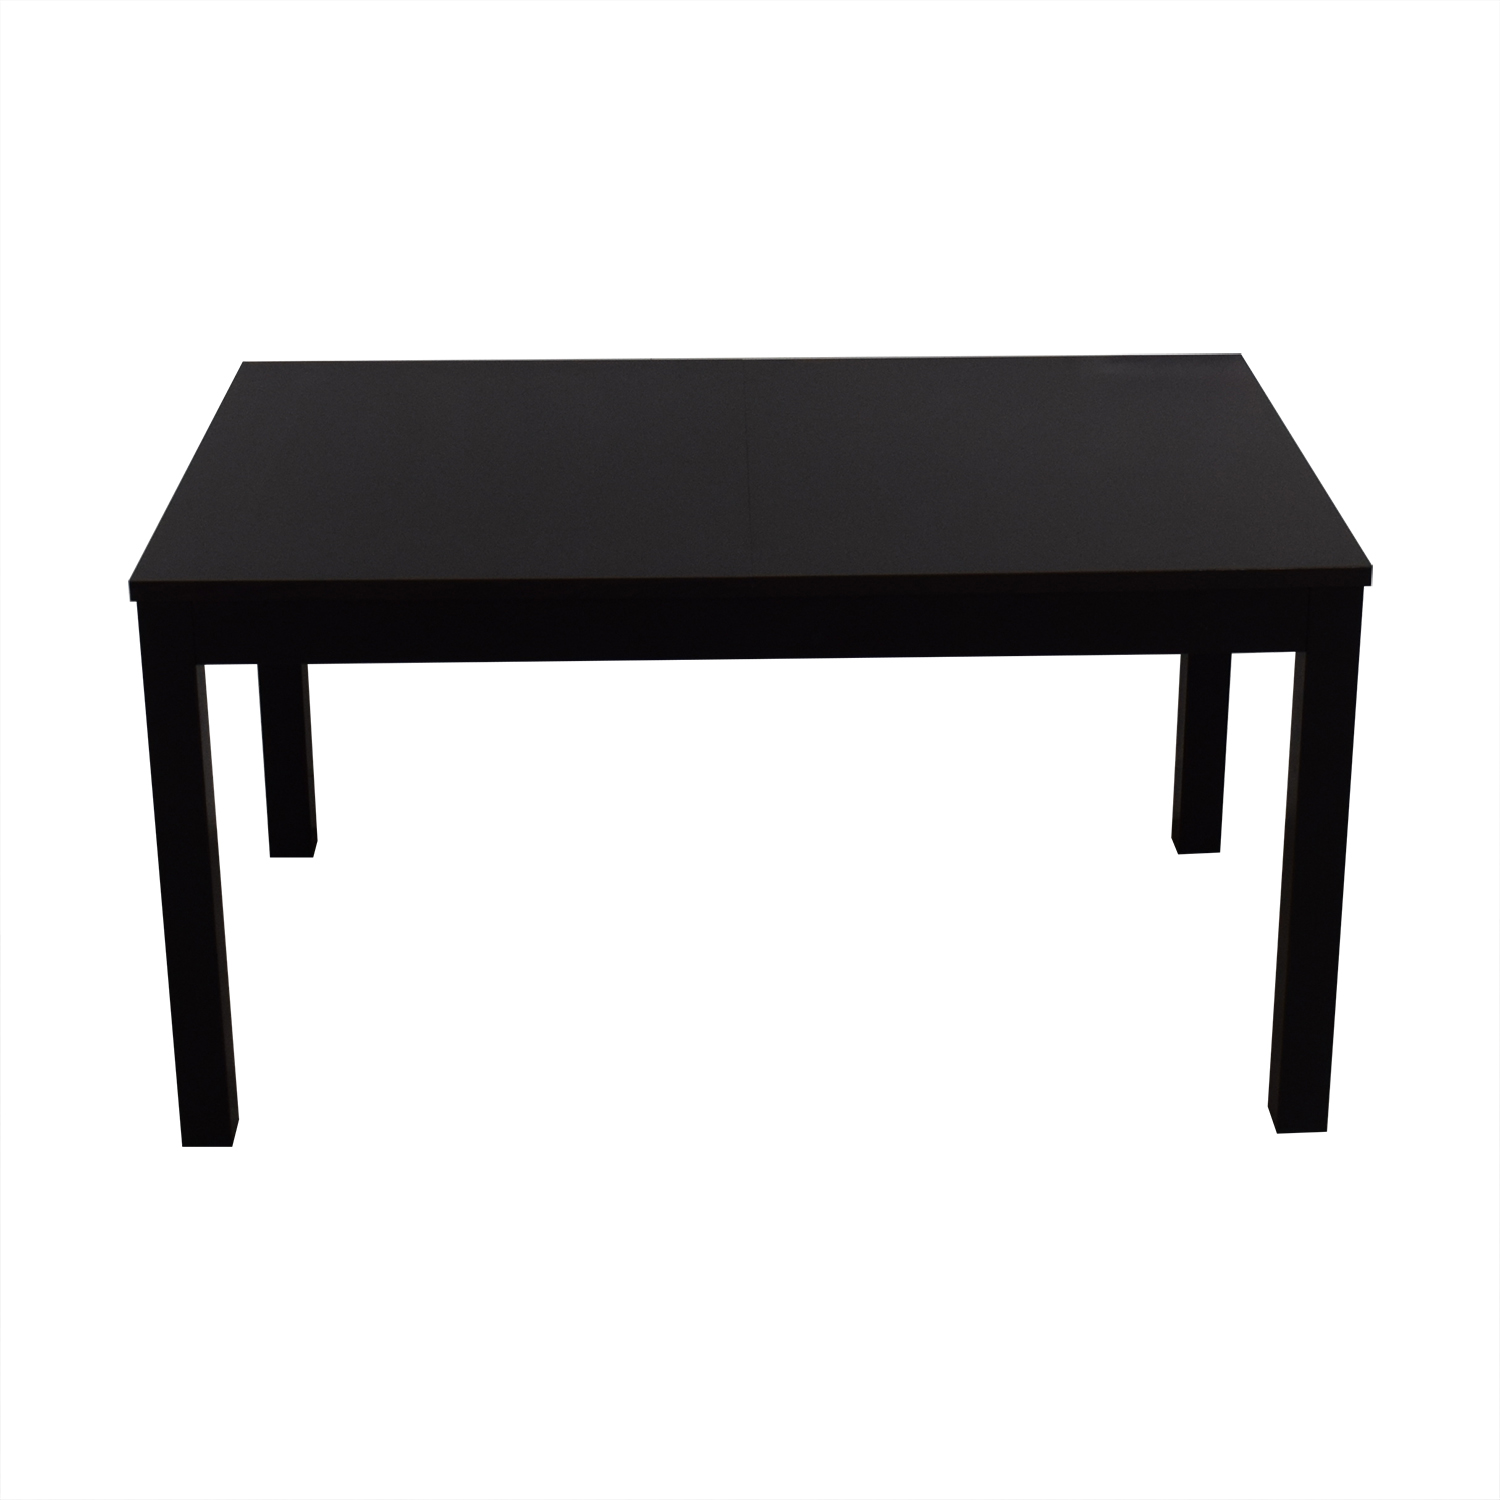 IKEA Bjursta Extendable Table / Sofas